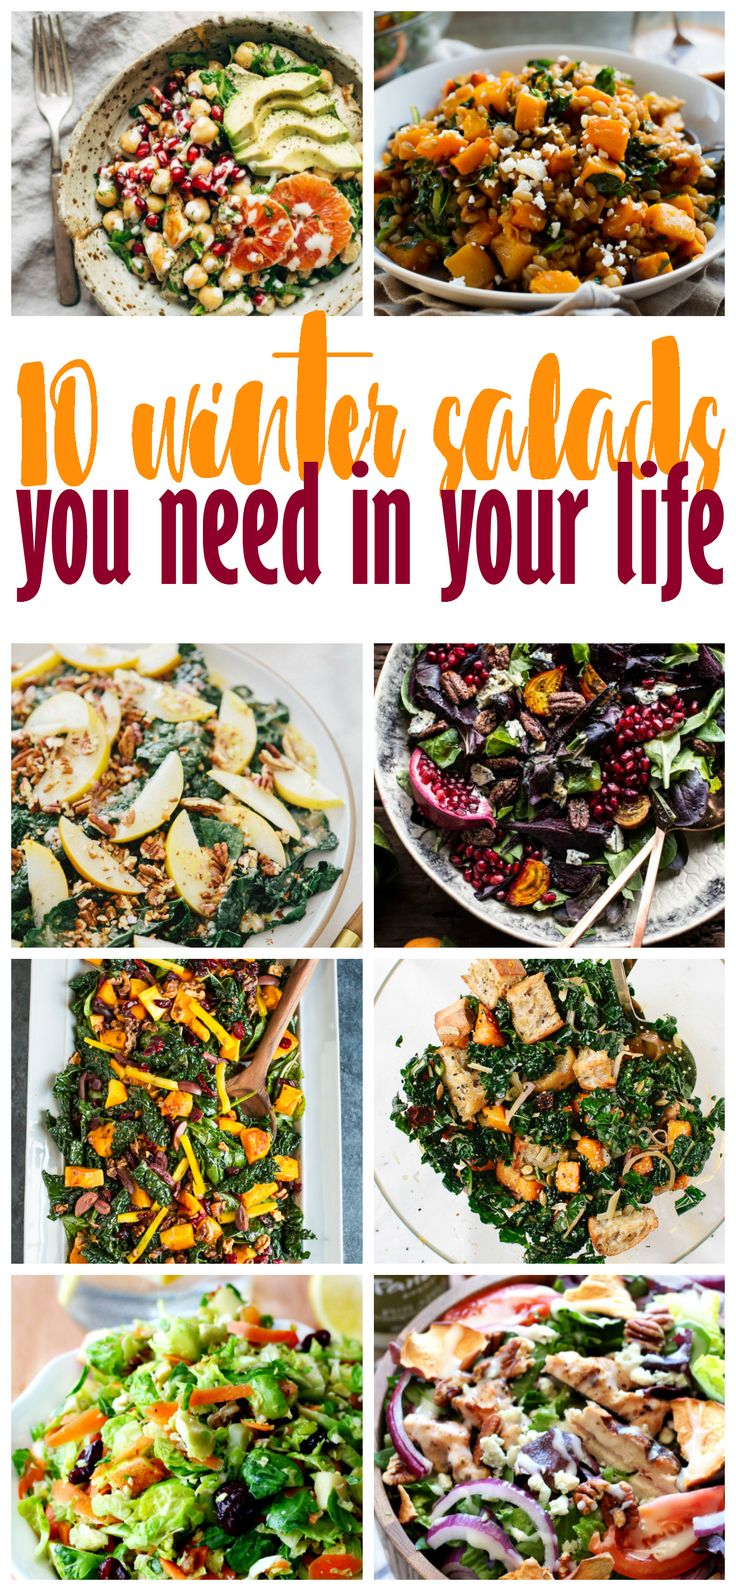 10 Winter Salads You Need In Your Life- seasonal salads to help lighten the load during the holidays!